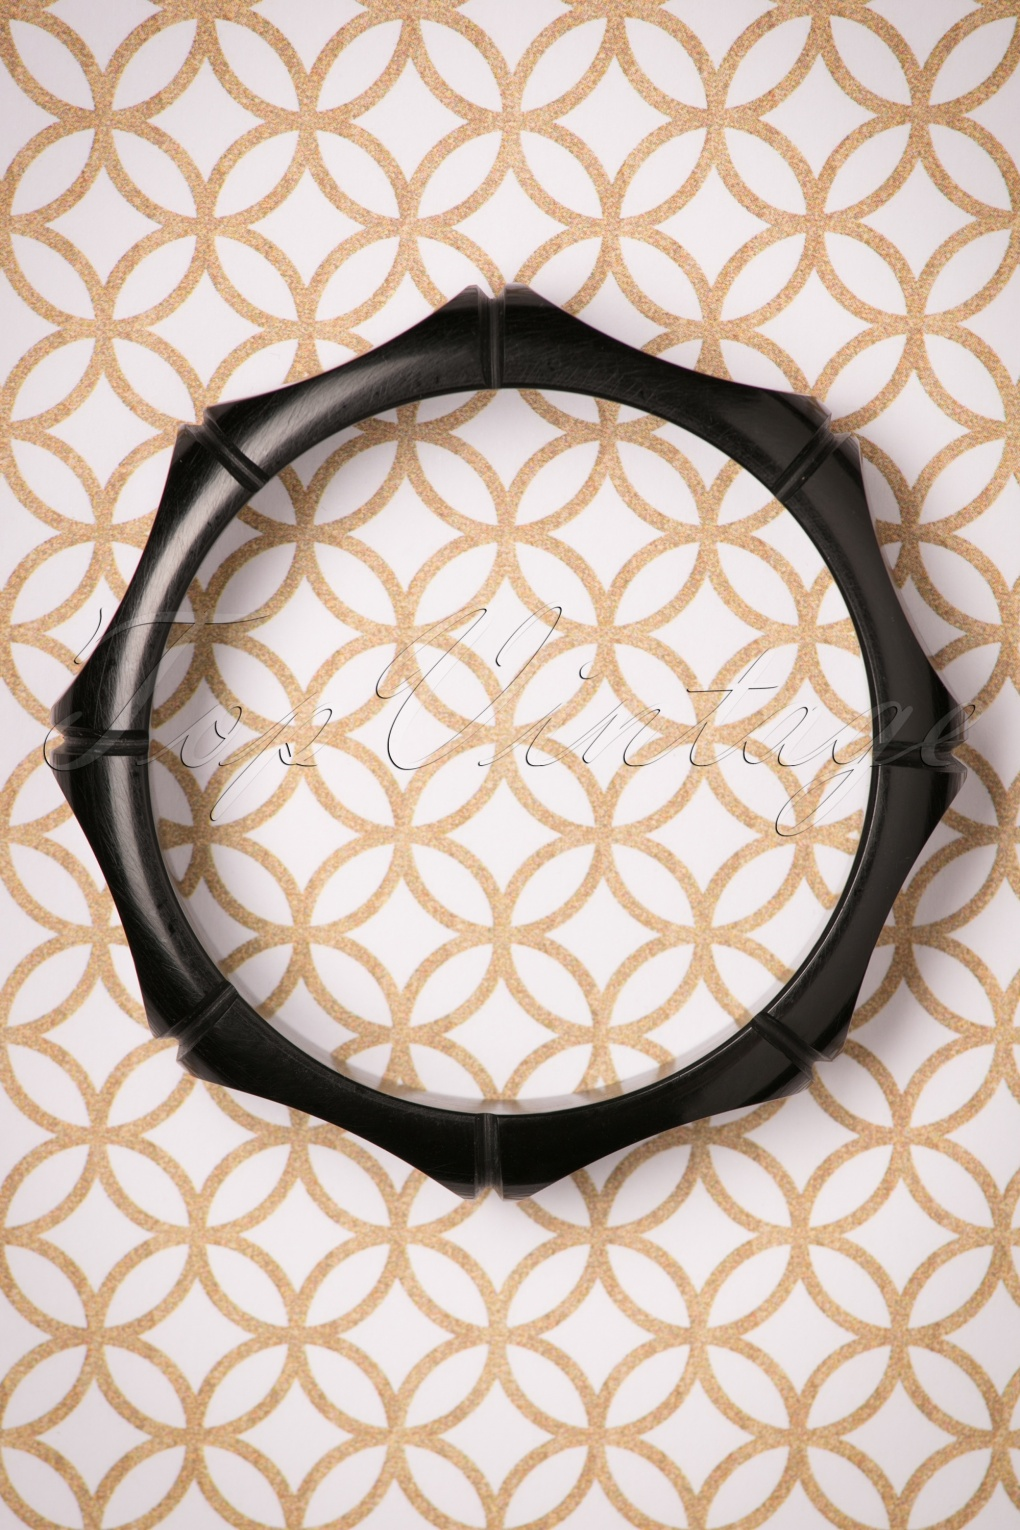 1930s Jewelry Styles and Trends TopVintage Exclusive  30s Octavia Bangle in Black £12.36 AT vintagedancer.com